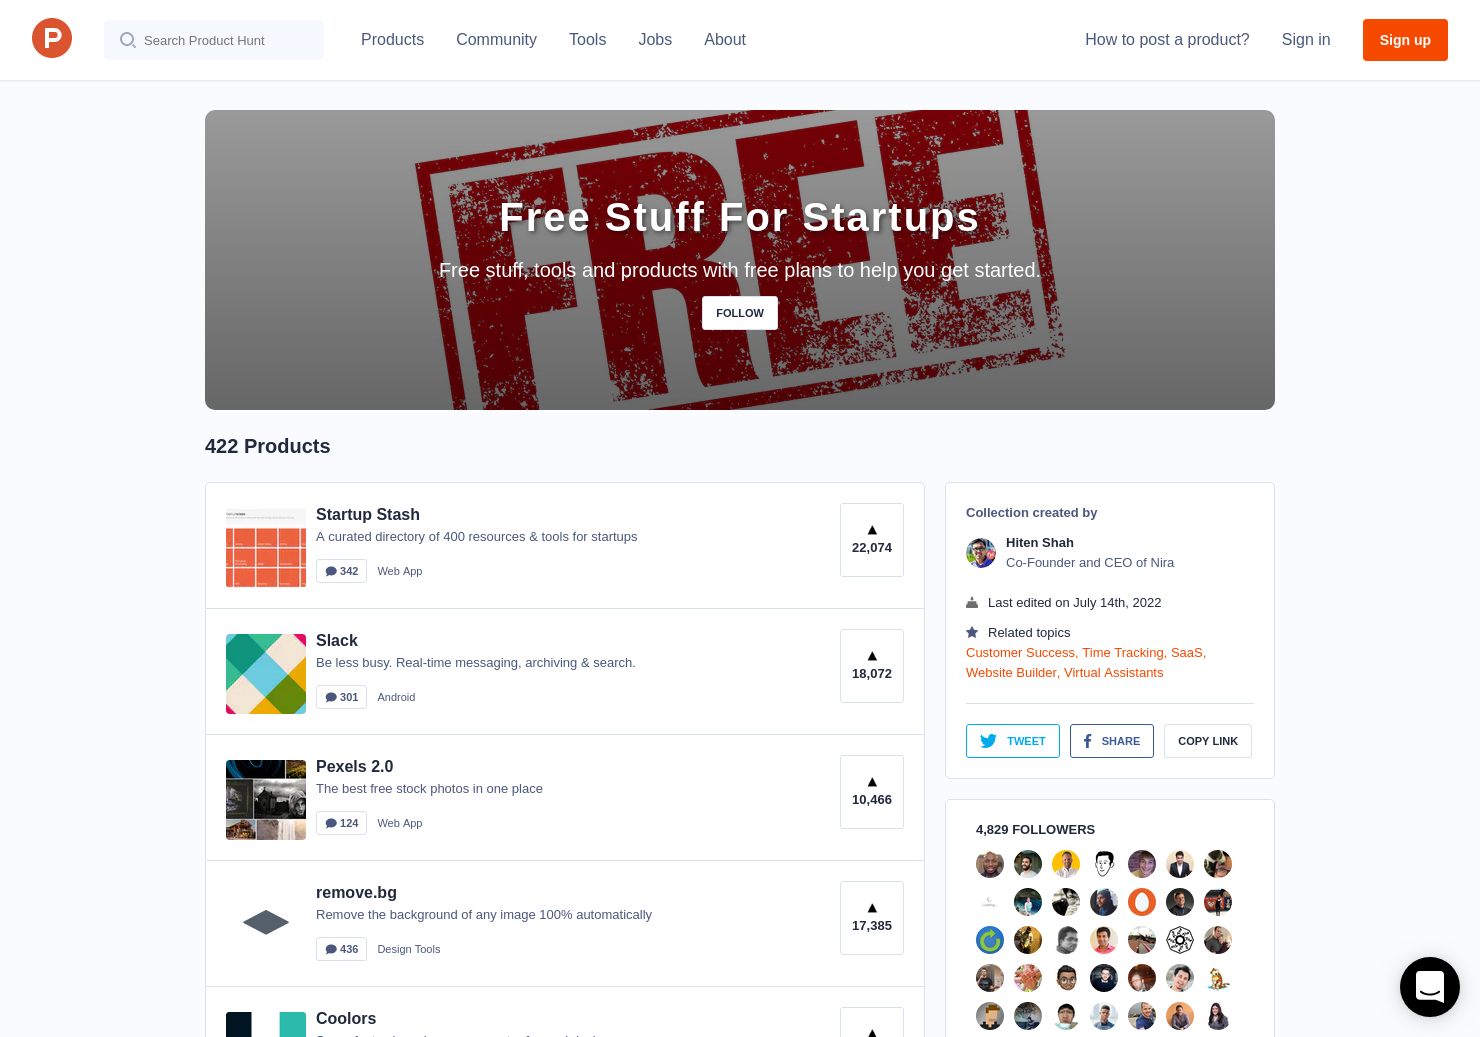 Free Stuff For Startups by Hiten Shah   Product Hunt